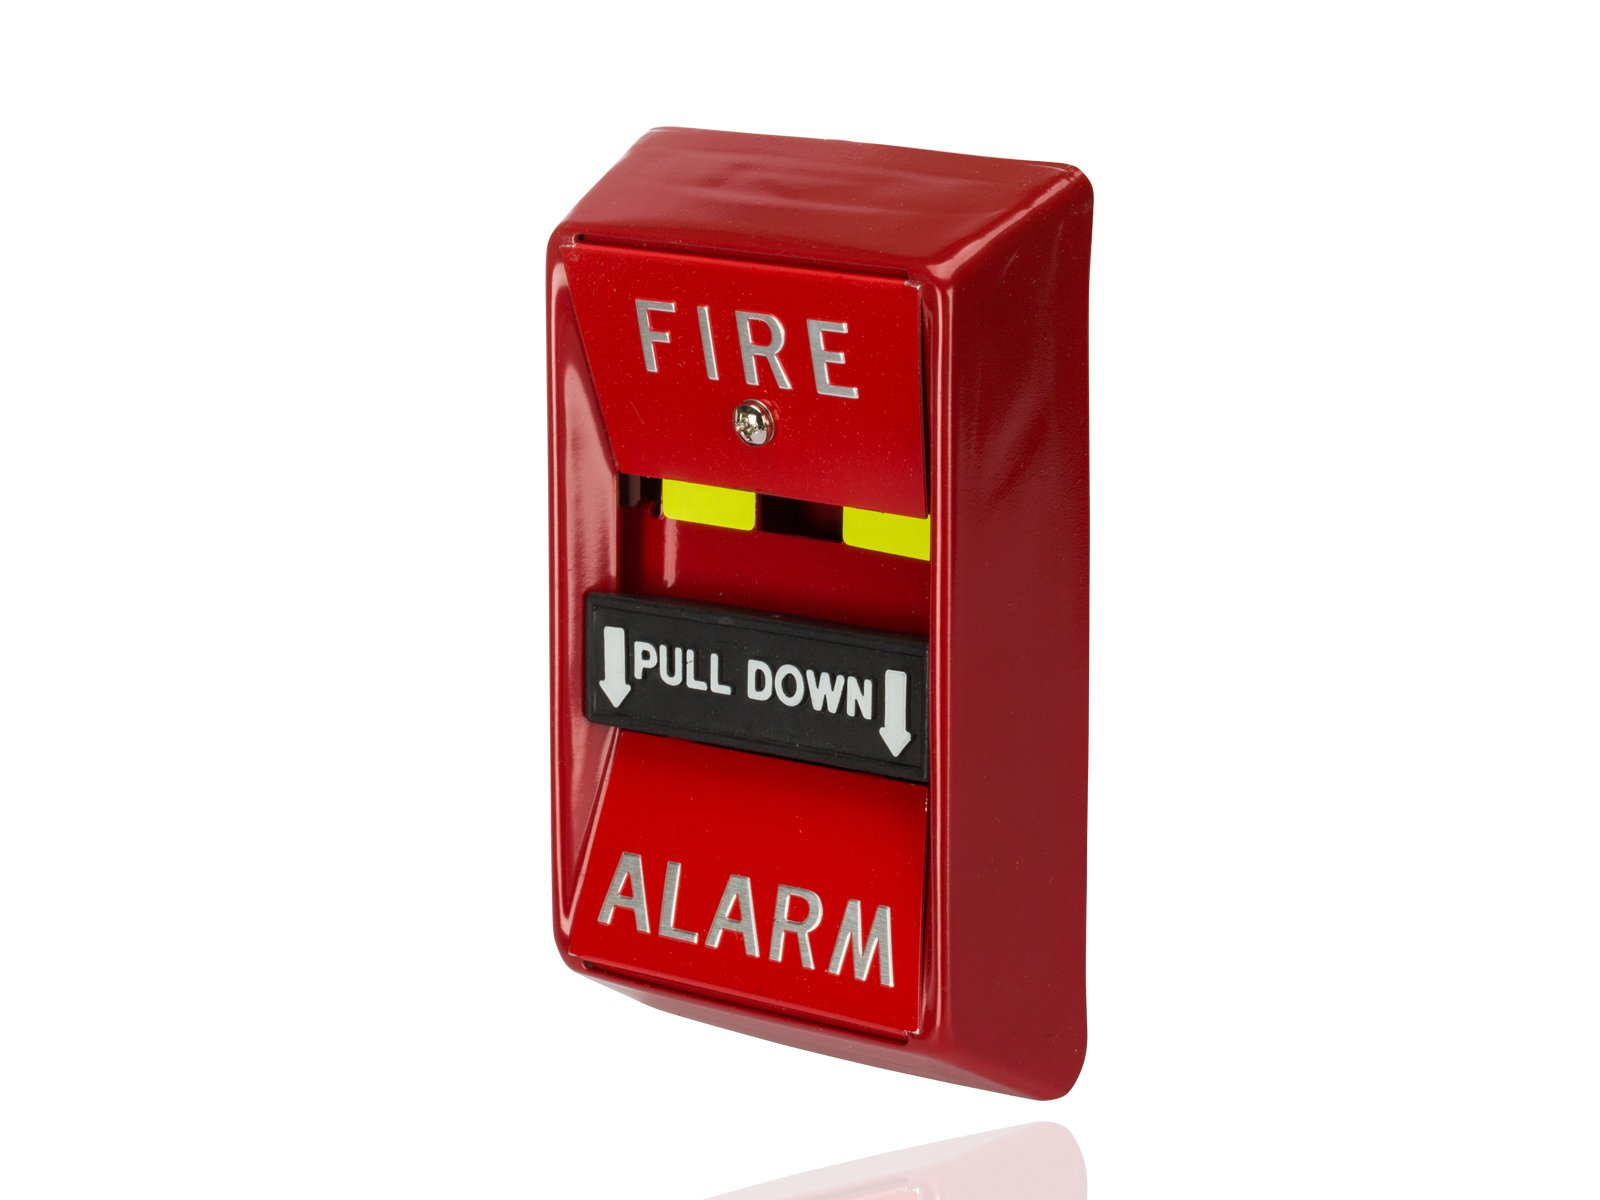 Manual Fire Alarm Pull-Down Station, SPST/NO Switch, 30VAC/DC, 1 Amp Current